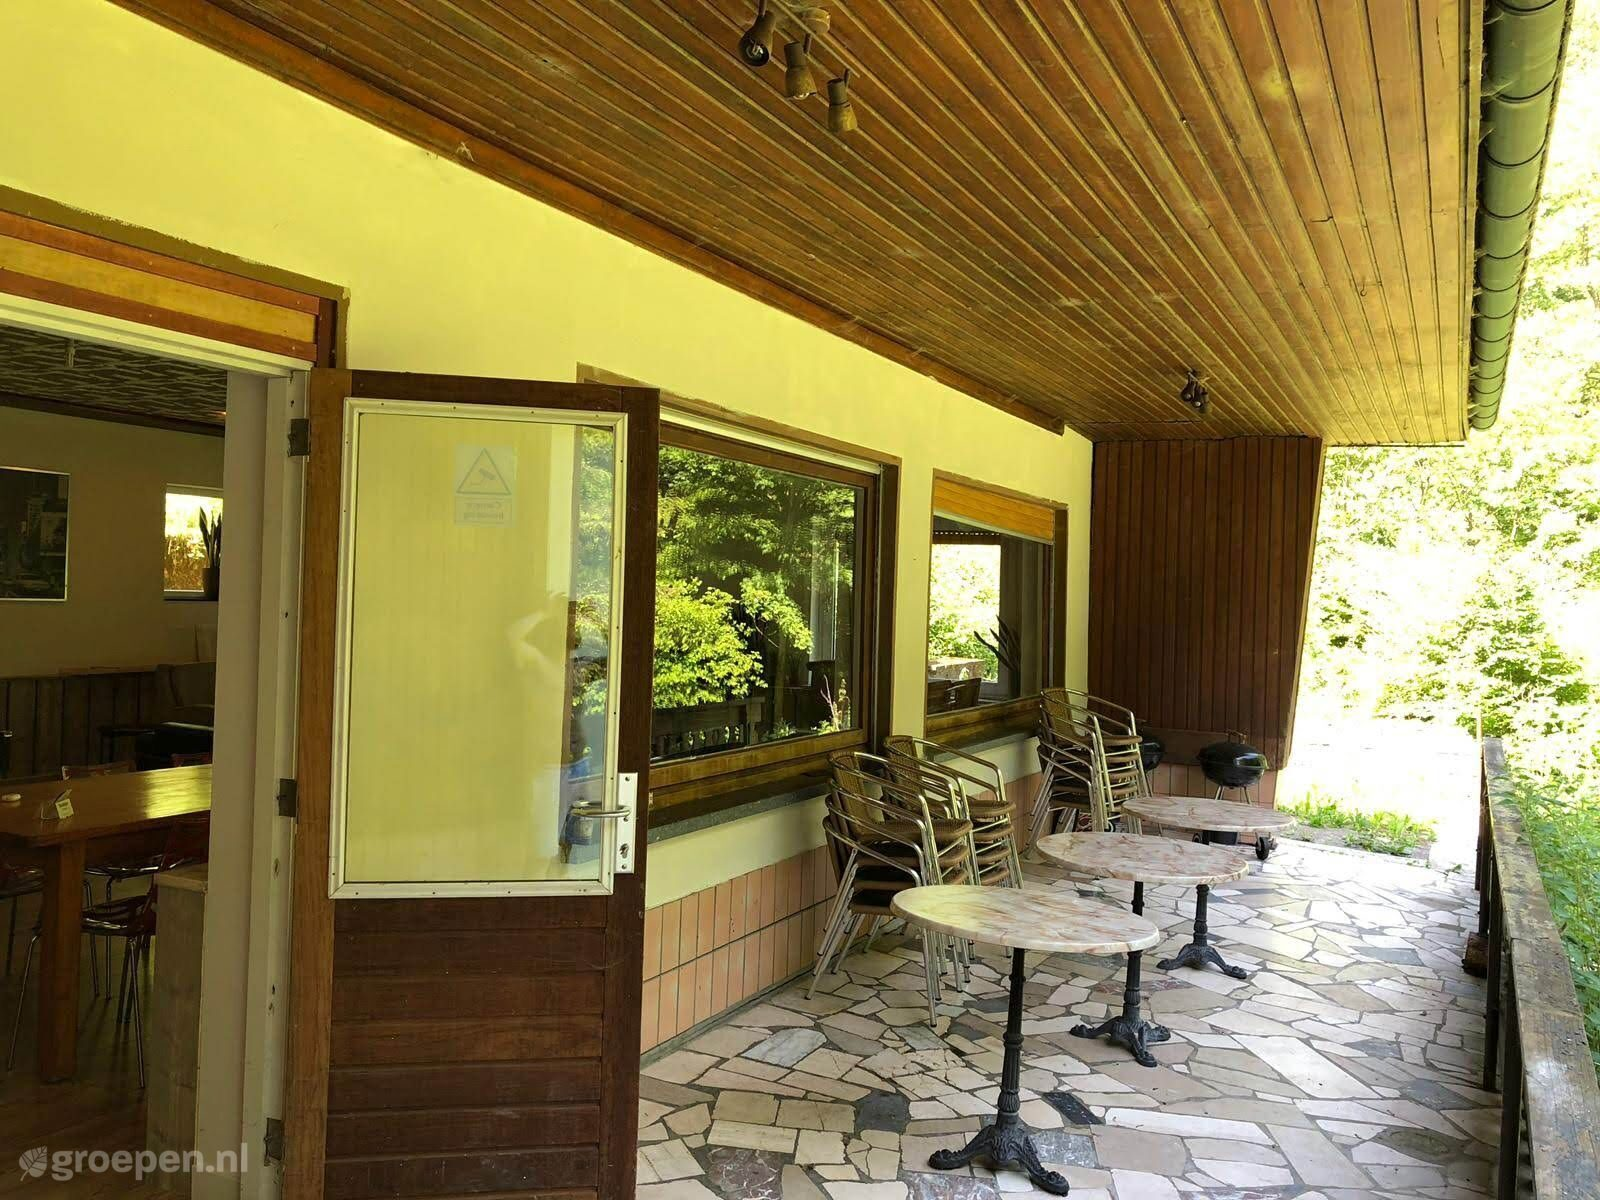 Group accommodation Malberg